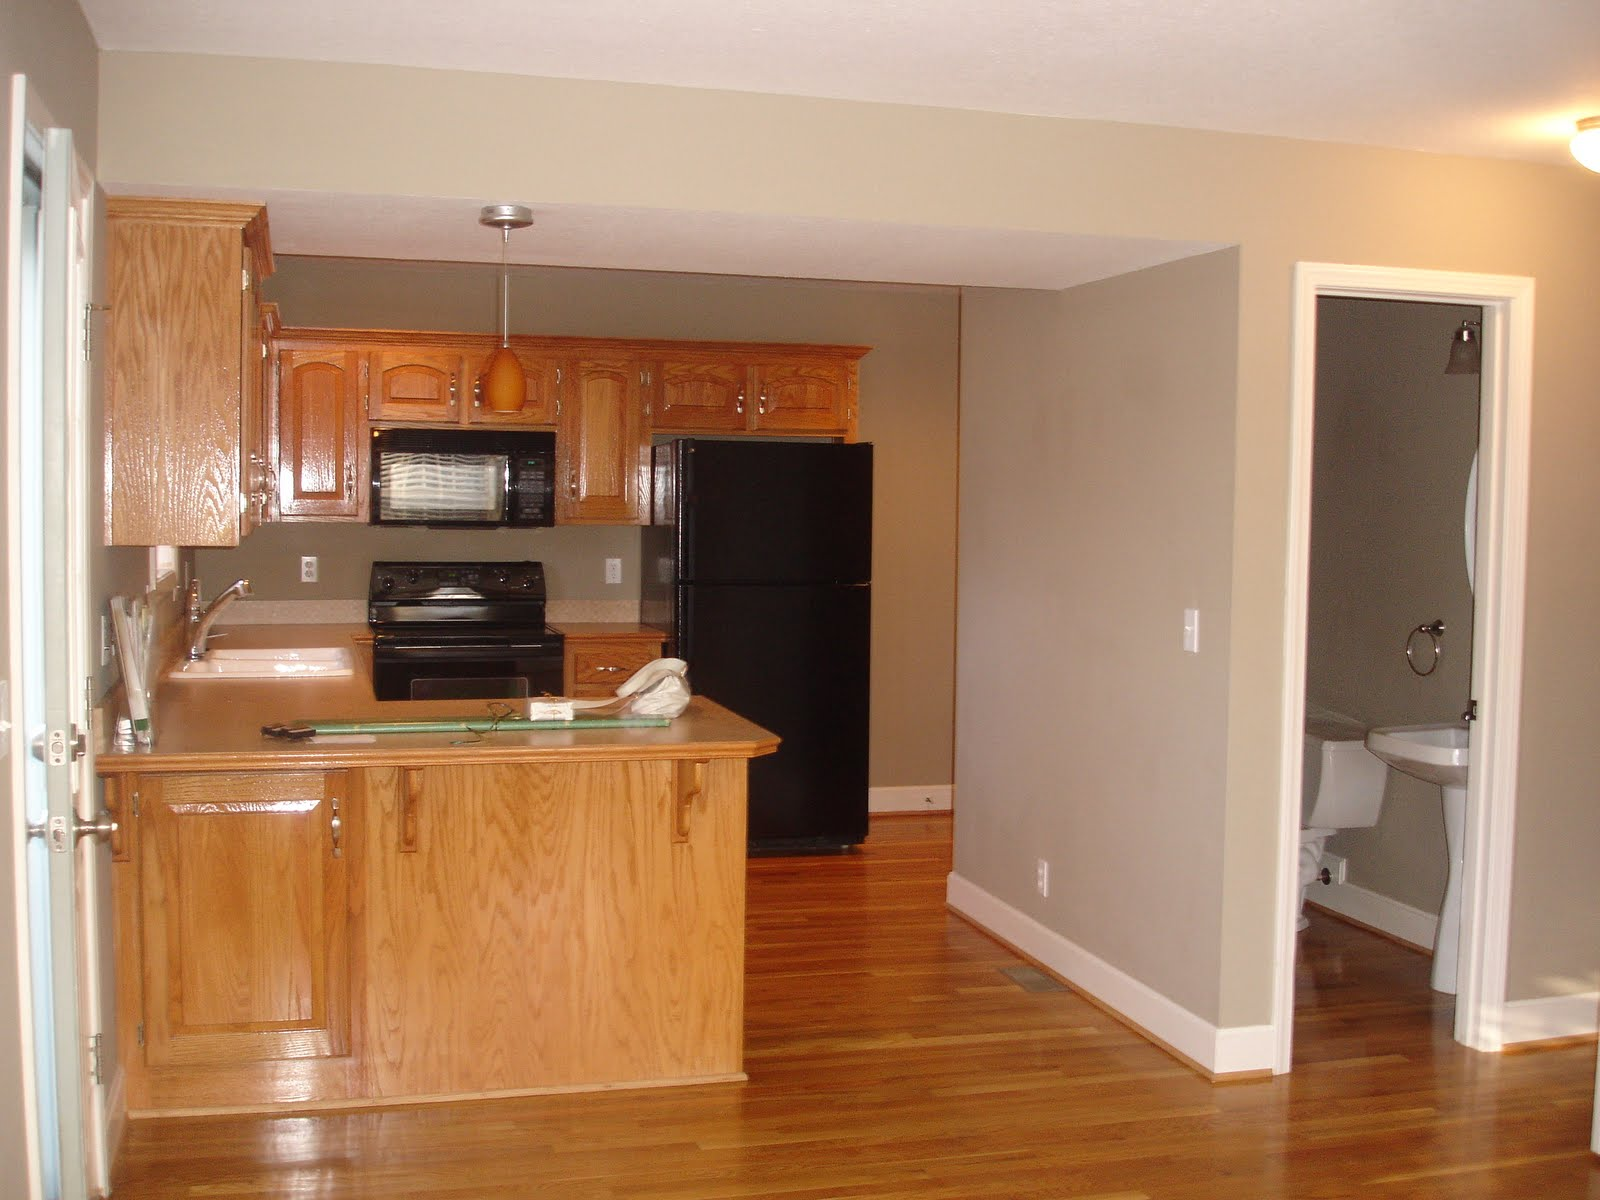 Oak Color Paint Paint Color To Tone Down Yellow Oak Cabinets And Warm Very Dark